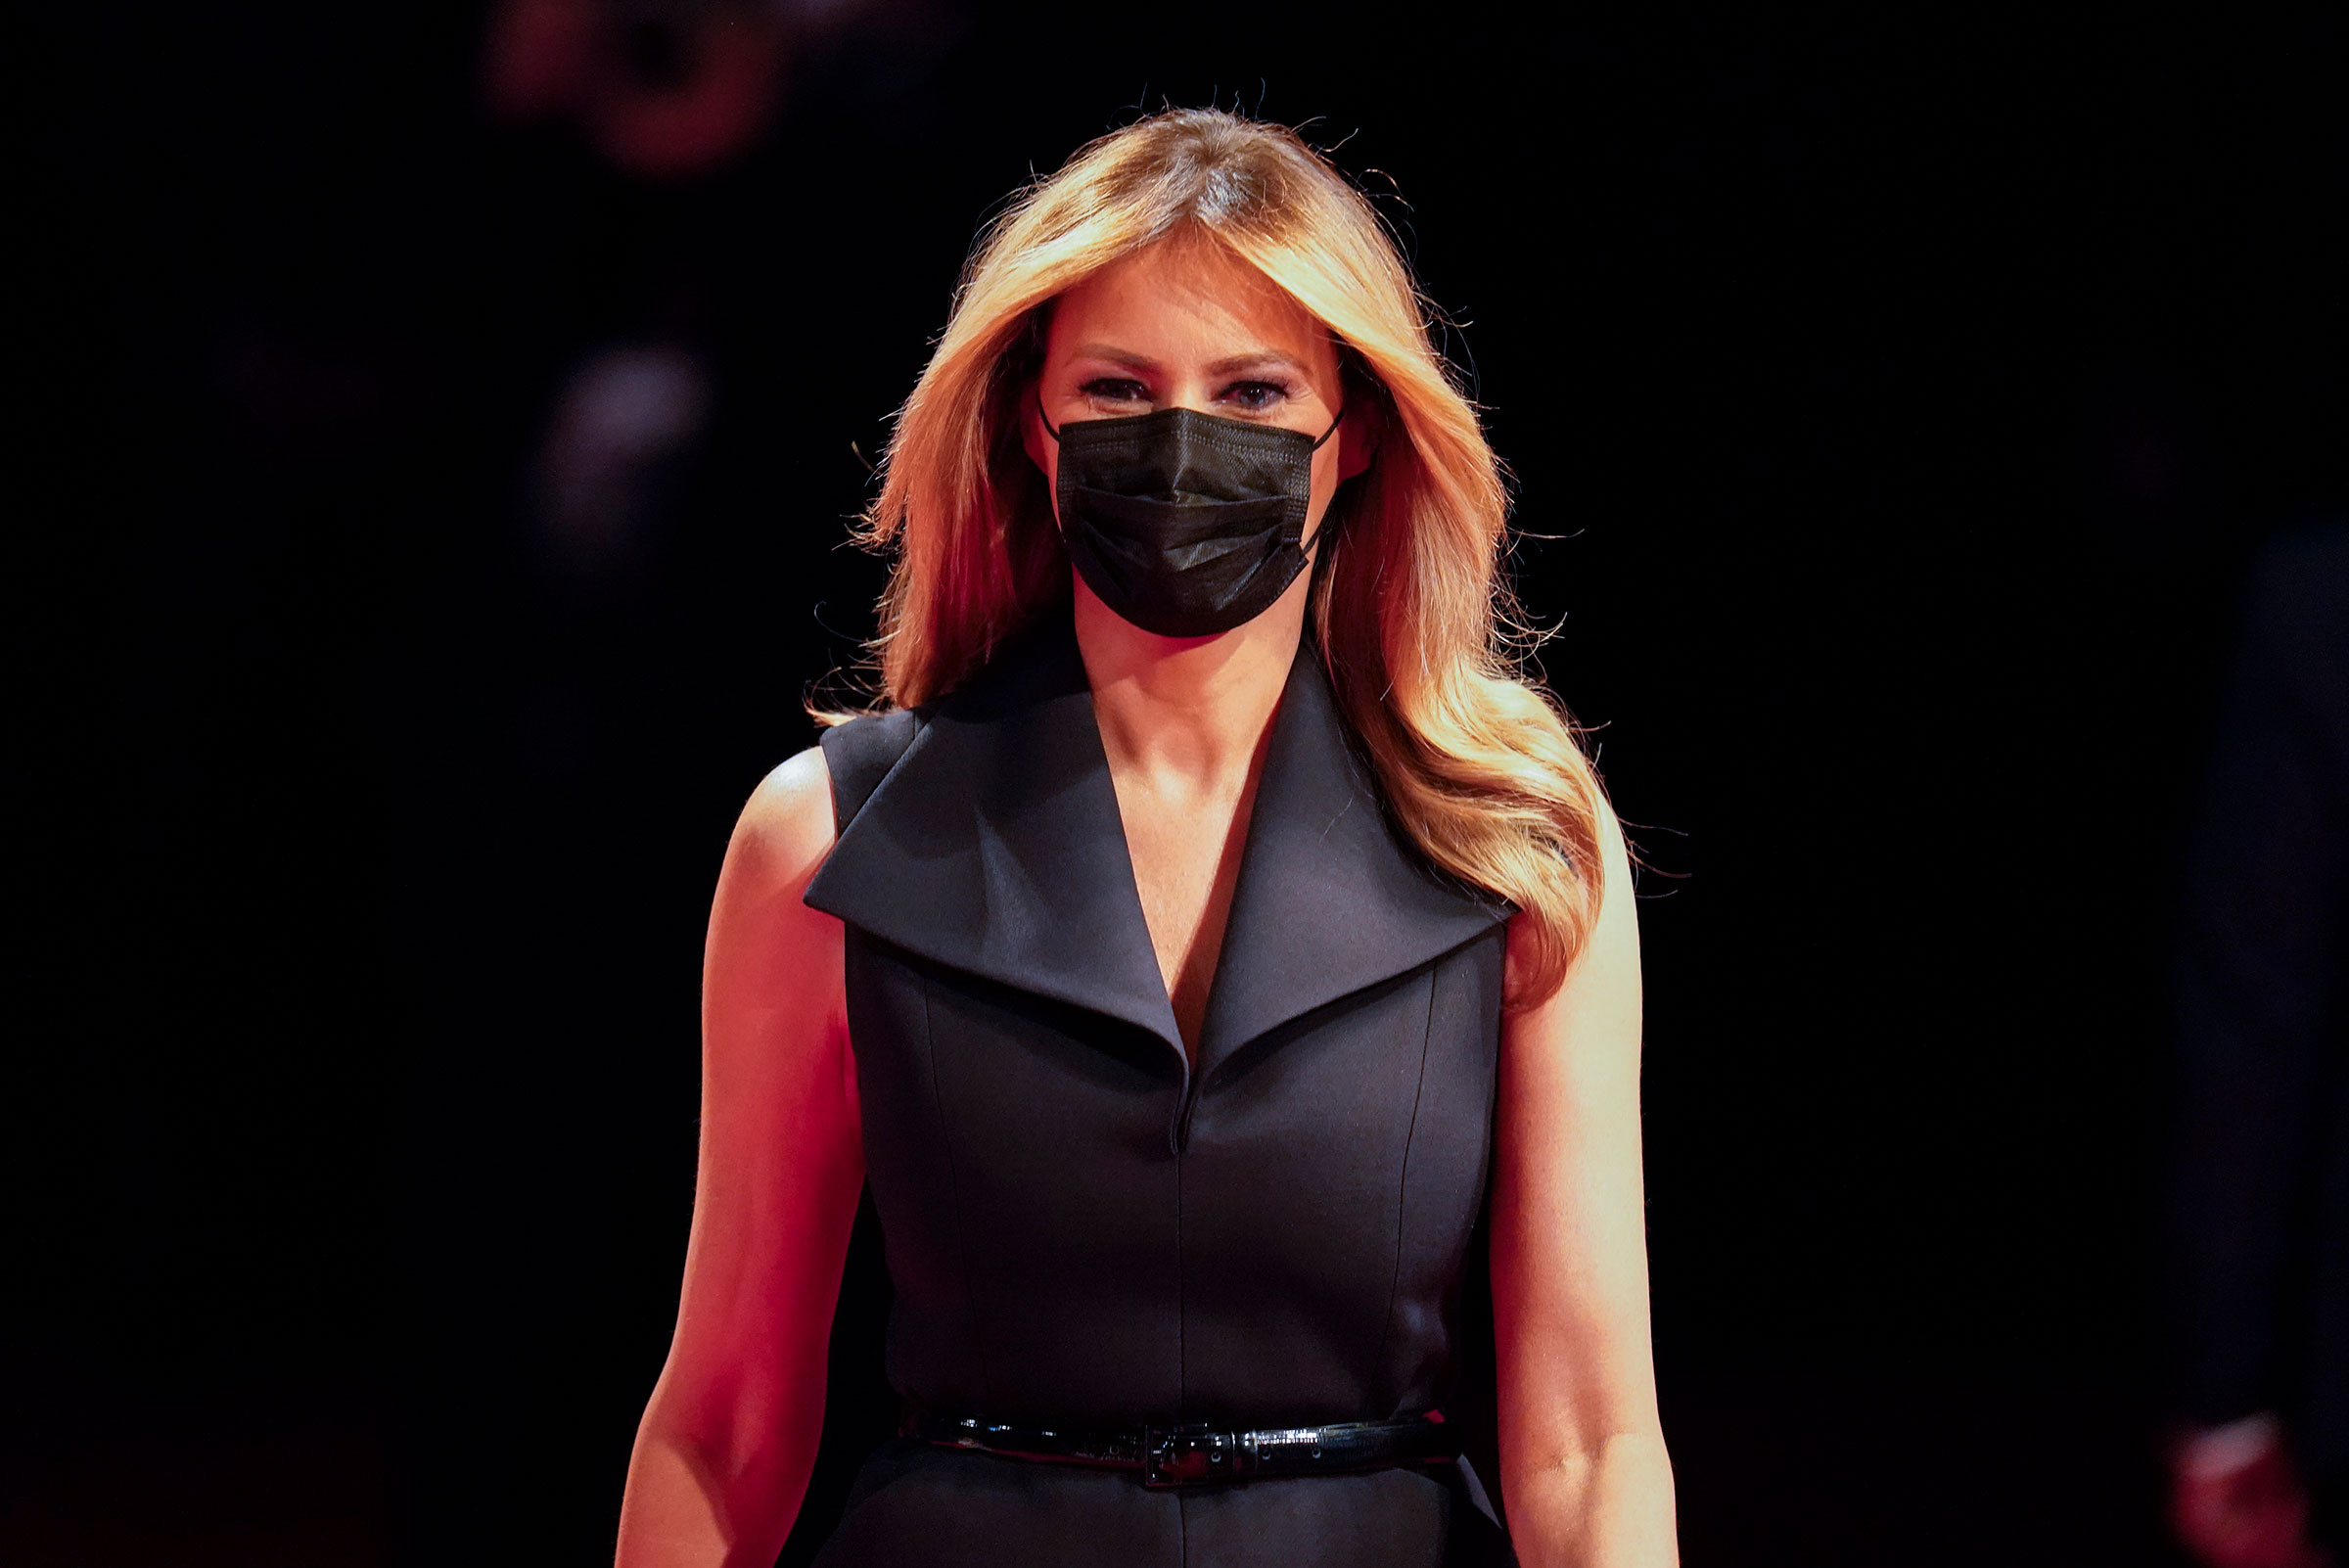 First lady Melania Trump arrives at the presidential debate on October 22 at Belmont University in Nashville, Tennessee.